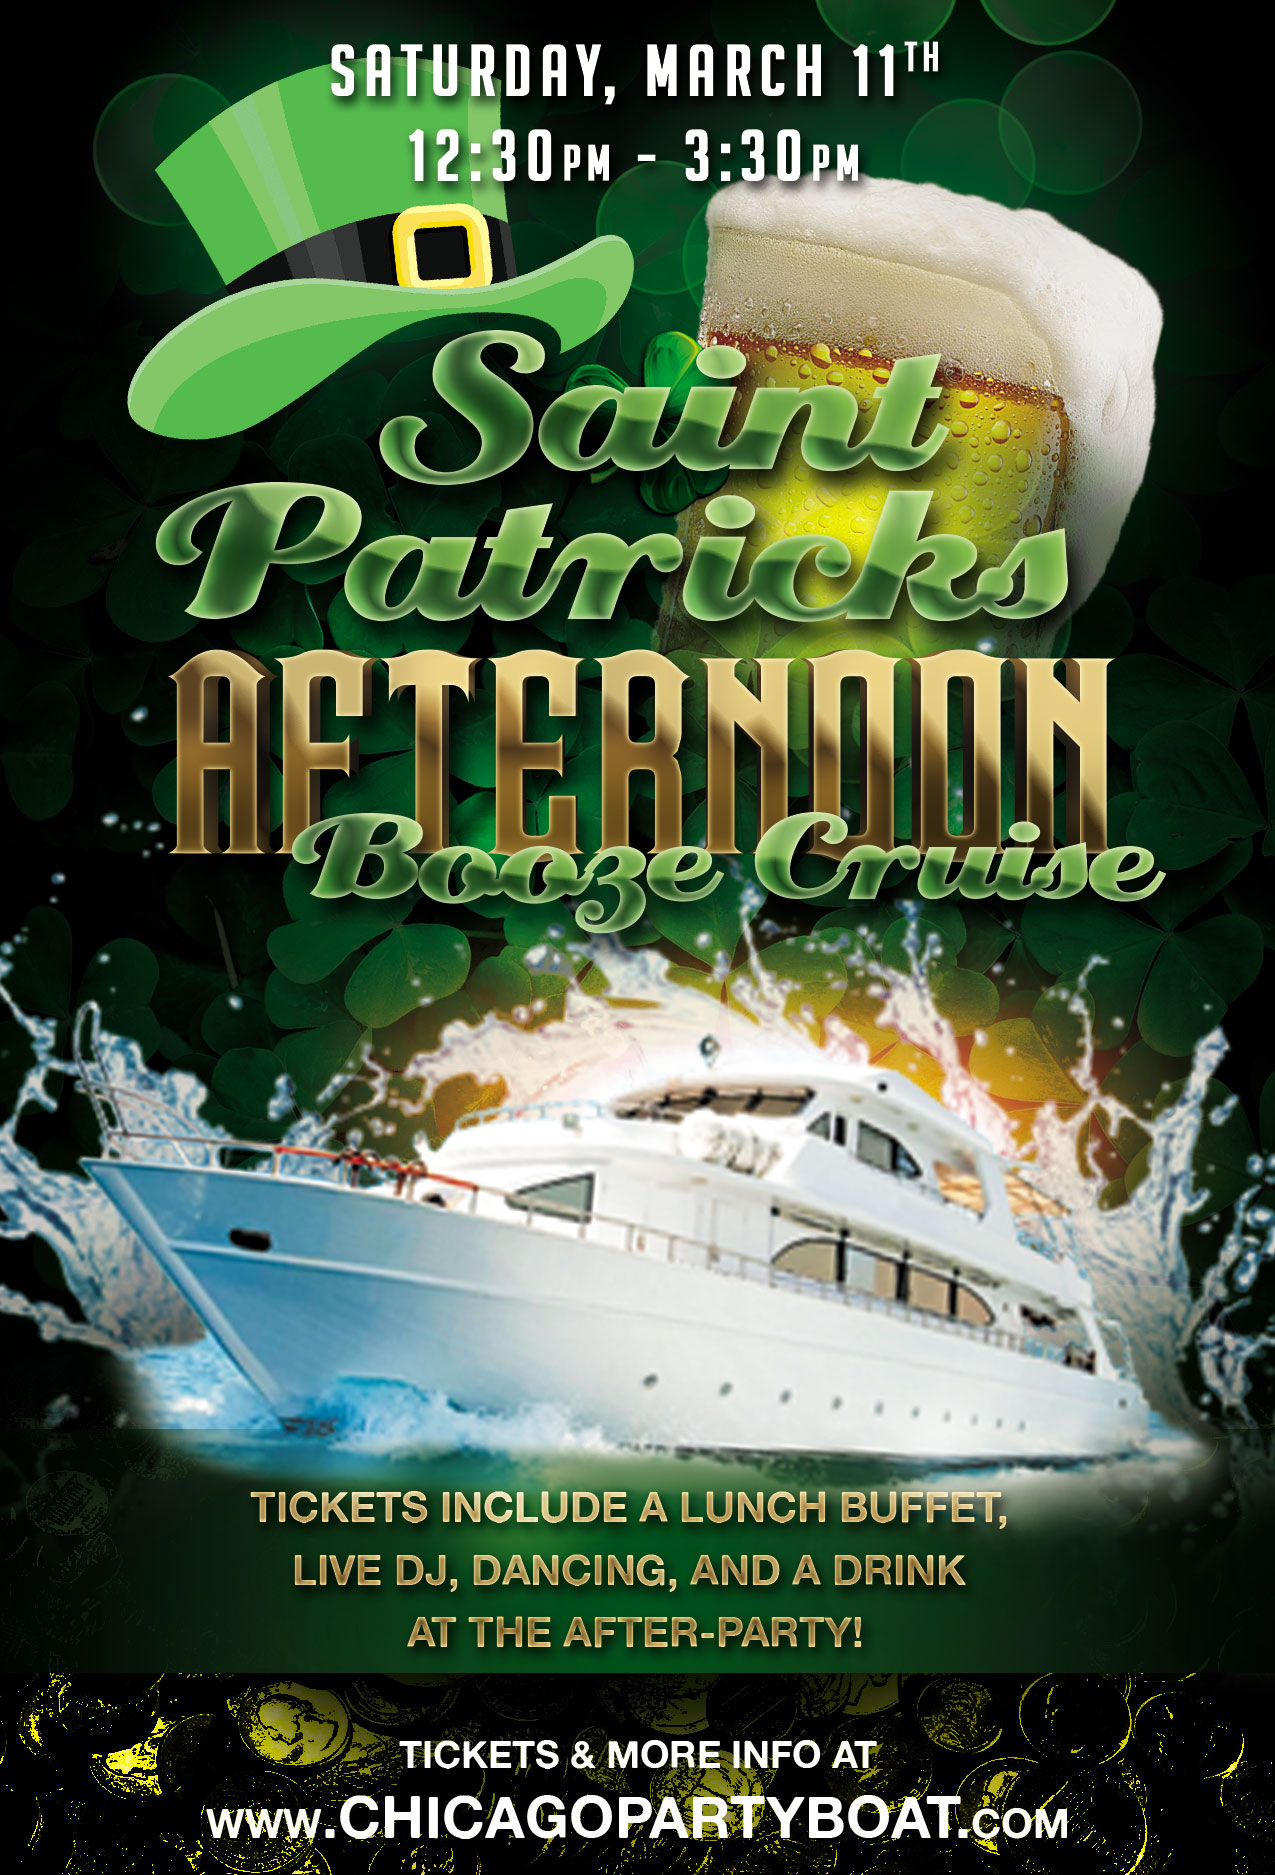 St. Patrick's Day Afternoon Booze Cruise on Lake Michigan! Tickets include a lunch buffet, Live DJ, dancing and a drink at the after party! Catch breathtaking views of the skyline while aboard the booze cruise!